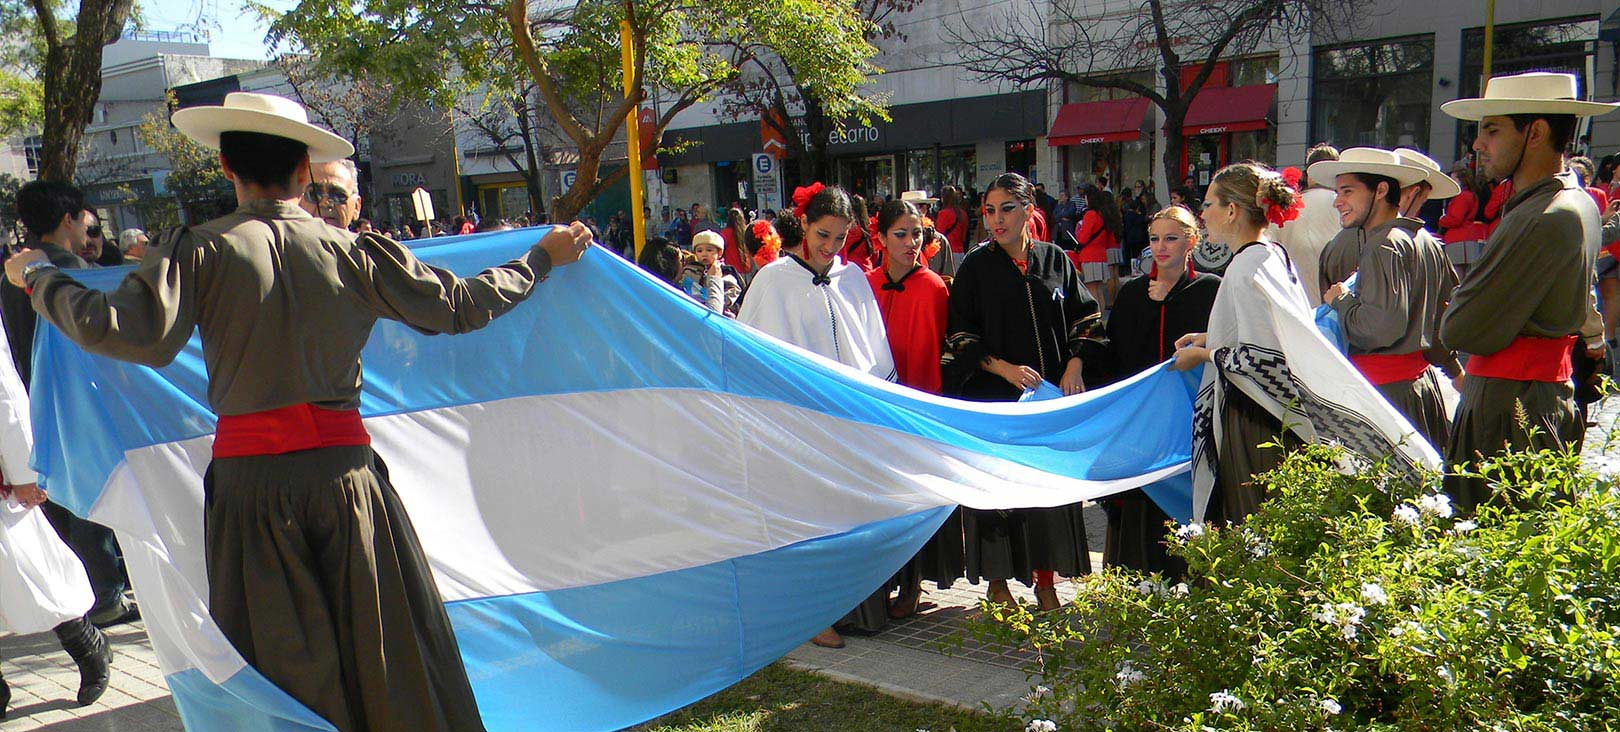 Off-Campus Programs crosscultural parade with flag.jpg